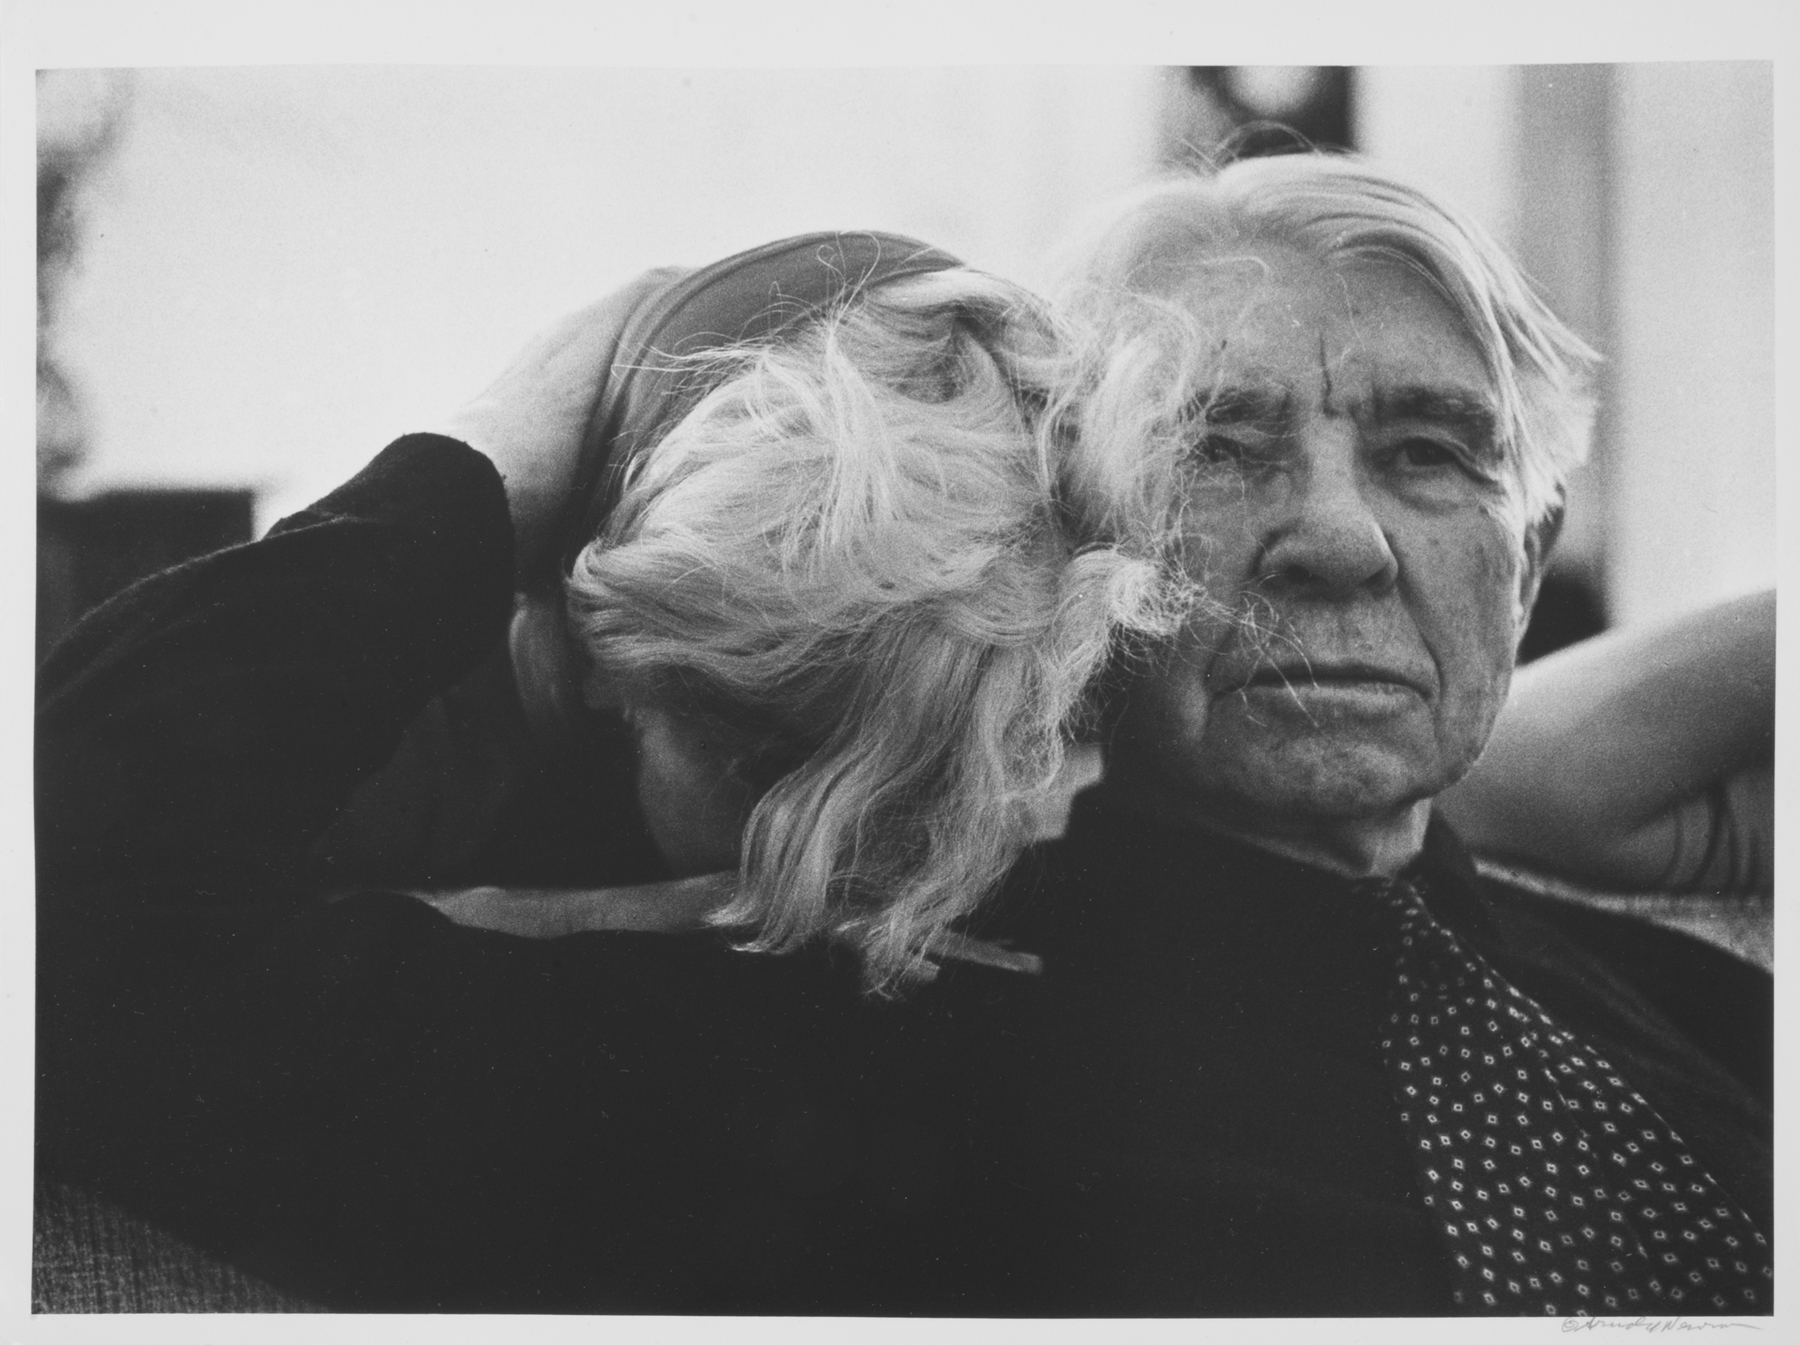 Arnold Newman/Courtesy of Julien's Auctions